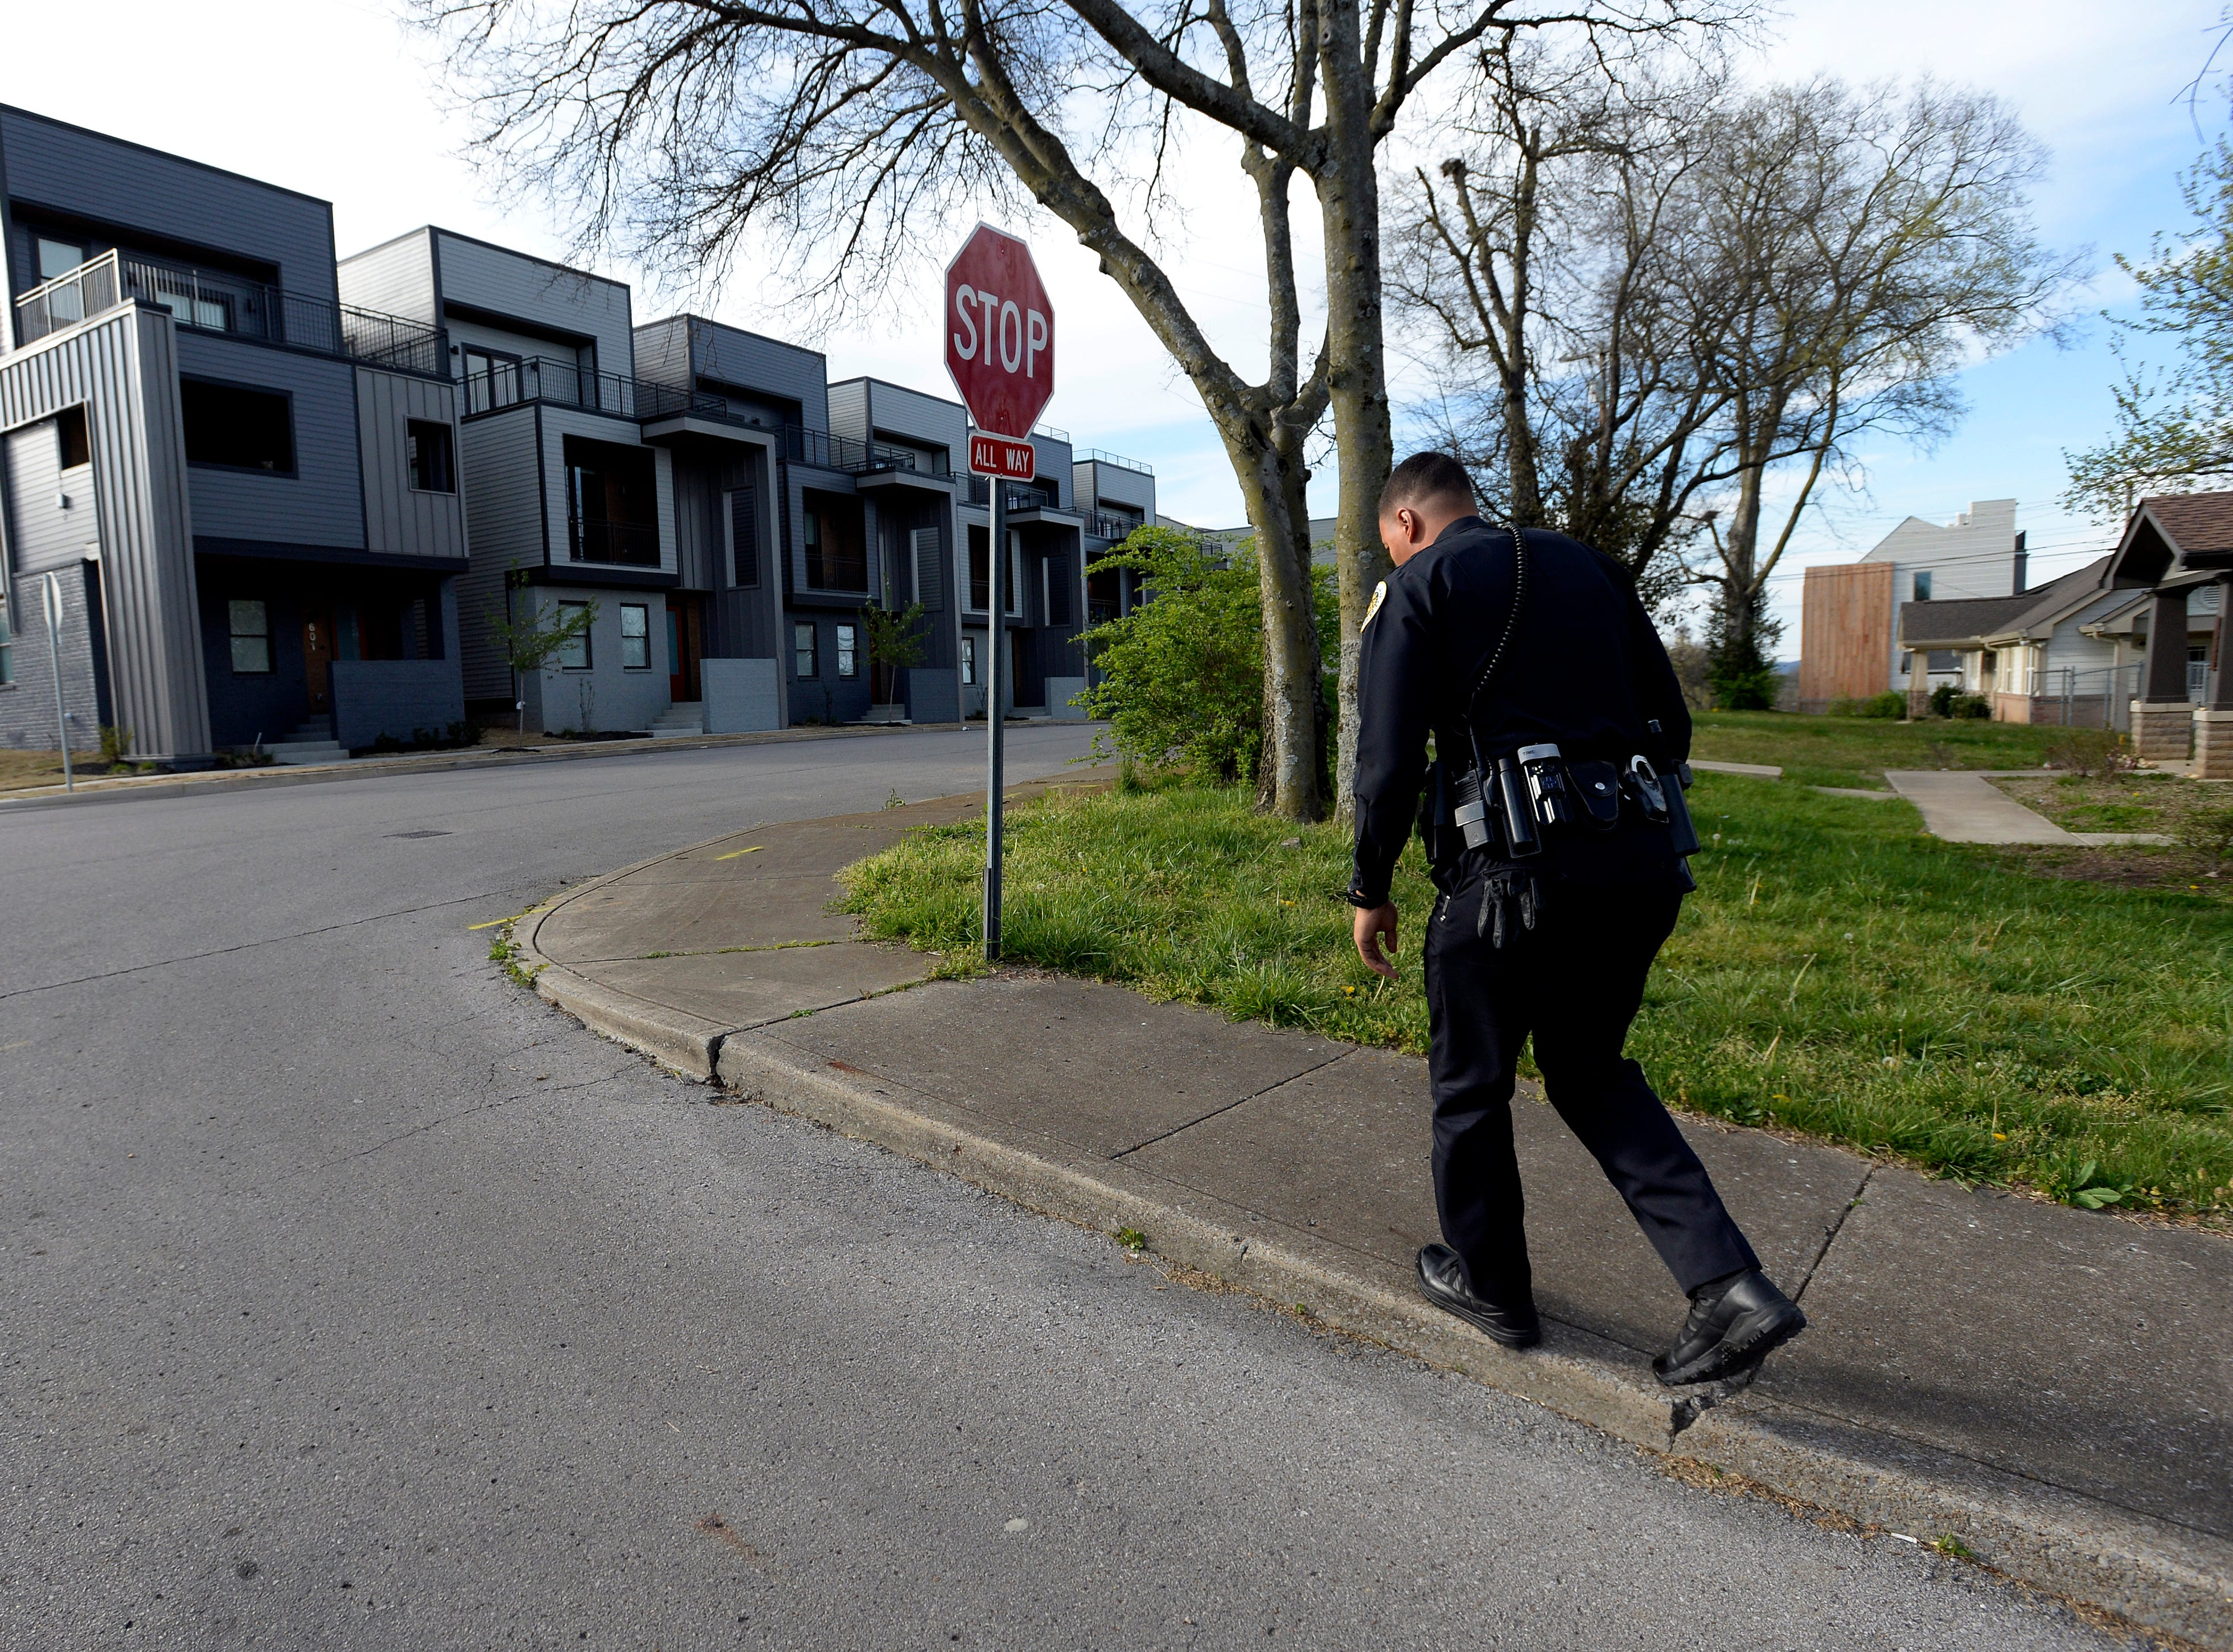 """Metro Nashville police officer Chris Dickerson walks to visit residents at their homes along 27th Avenue North on Monday, April 1, 2019 in Nashville, Tenn. During the """"fixed post"""" time of his shift, Dickerson spends about 30 minutes in different areas of the north precinct visiting with people in the neighborhood."""